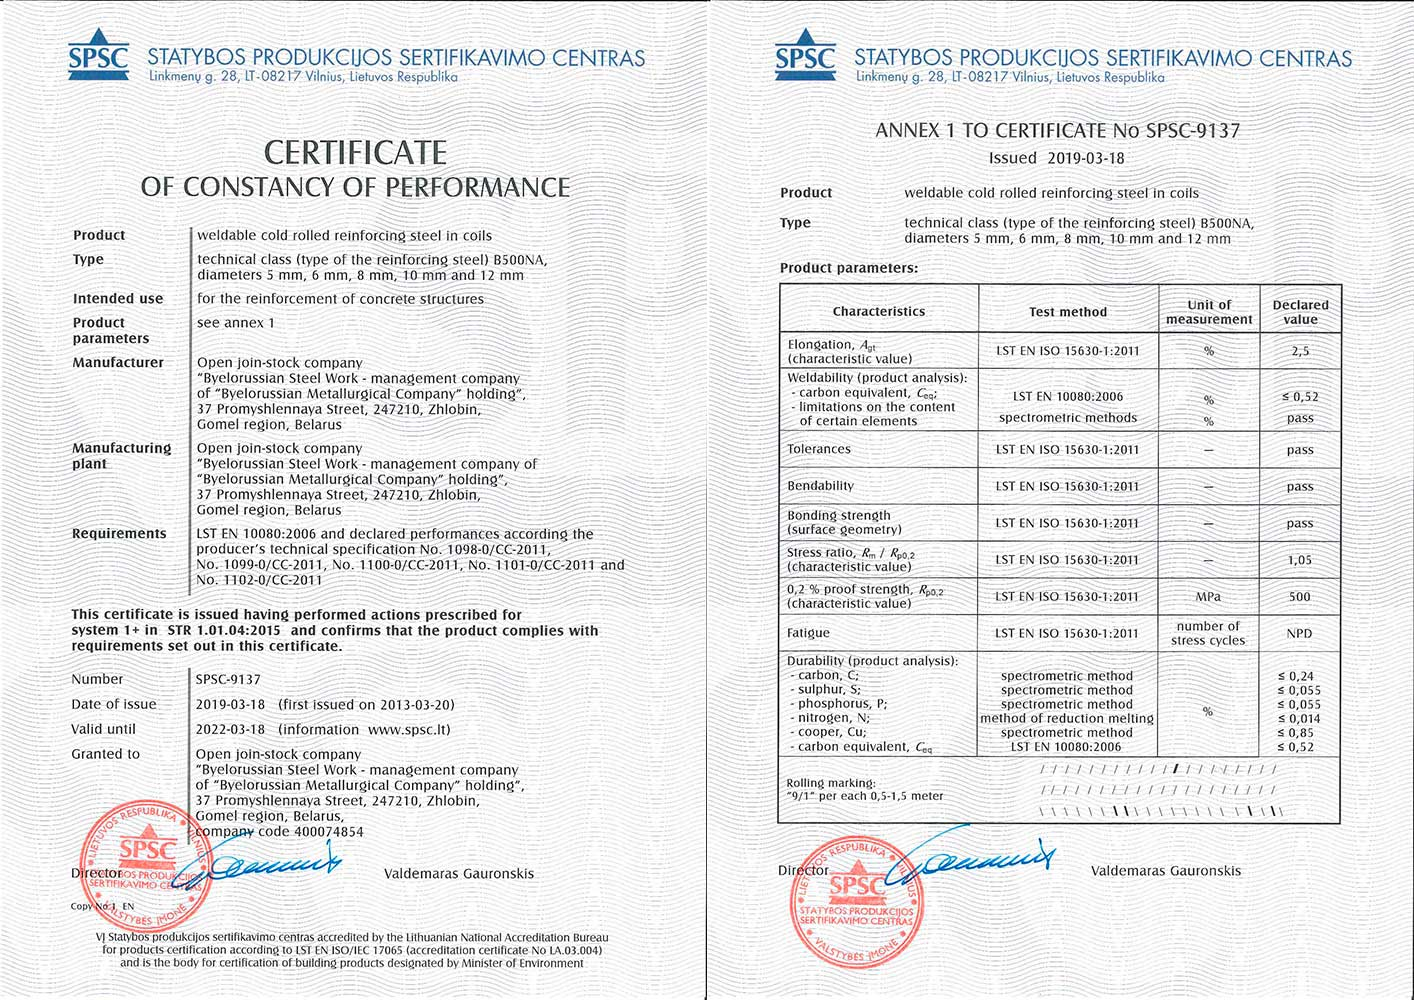 Certificate«SPSC», Lithuania, No. SPSC-9137 for production of weldable cold-deformed reinforcing steel in coils BSt500KR(A) Ø  5,6,8,10,12 mm in conformity with standard LST EN 10080:2006 and producer's technical specifications No.1098-0/CC-2011, No.1099-0/CC-2011, No.1100-0/CC-2011, No.1101-0/CC-2011, No.1102-0/CC-2011.